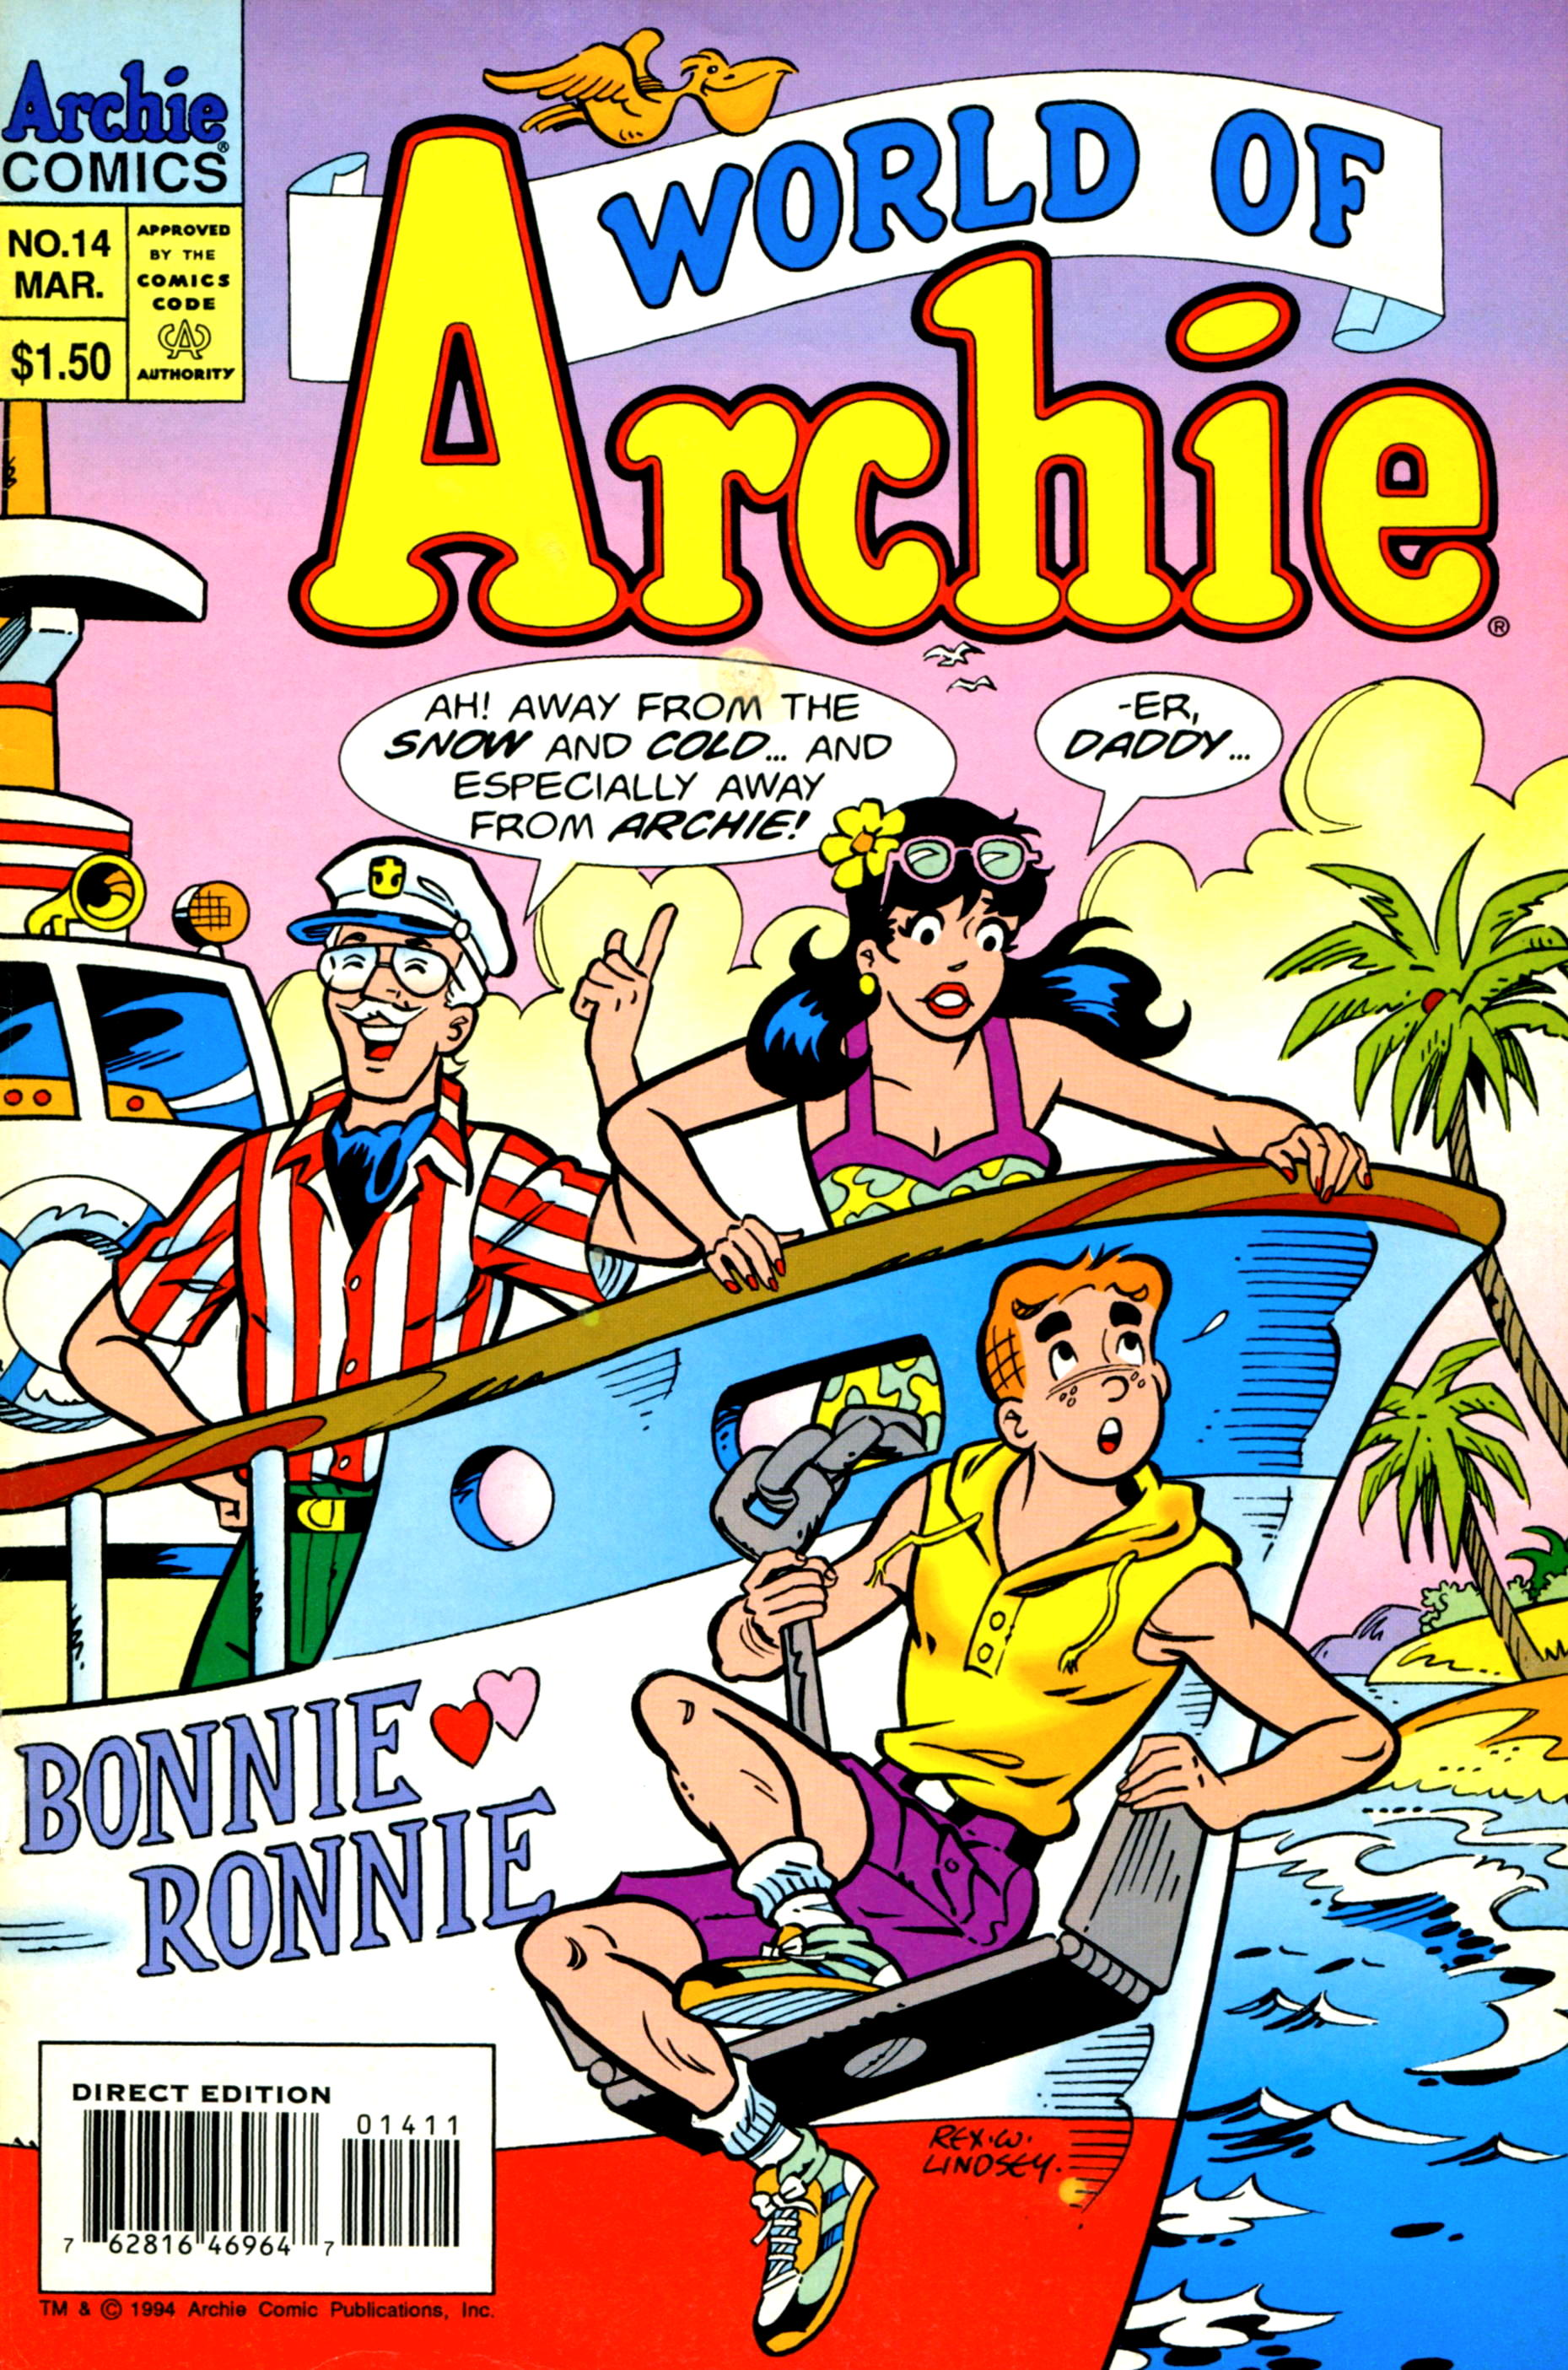 Read online World of Archie comic -  Issue #14 - 1